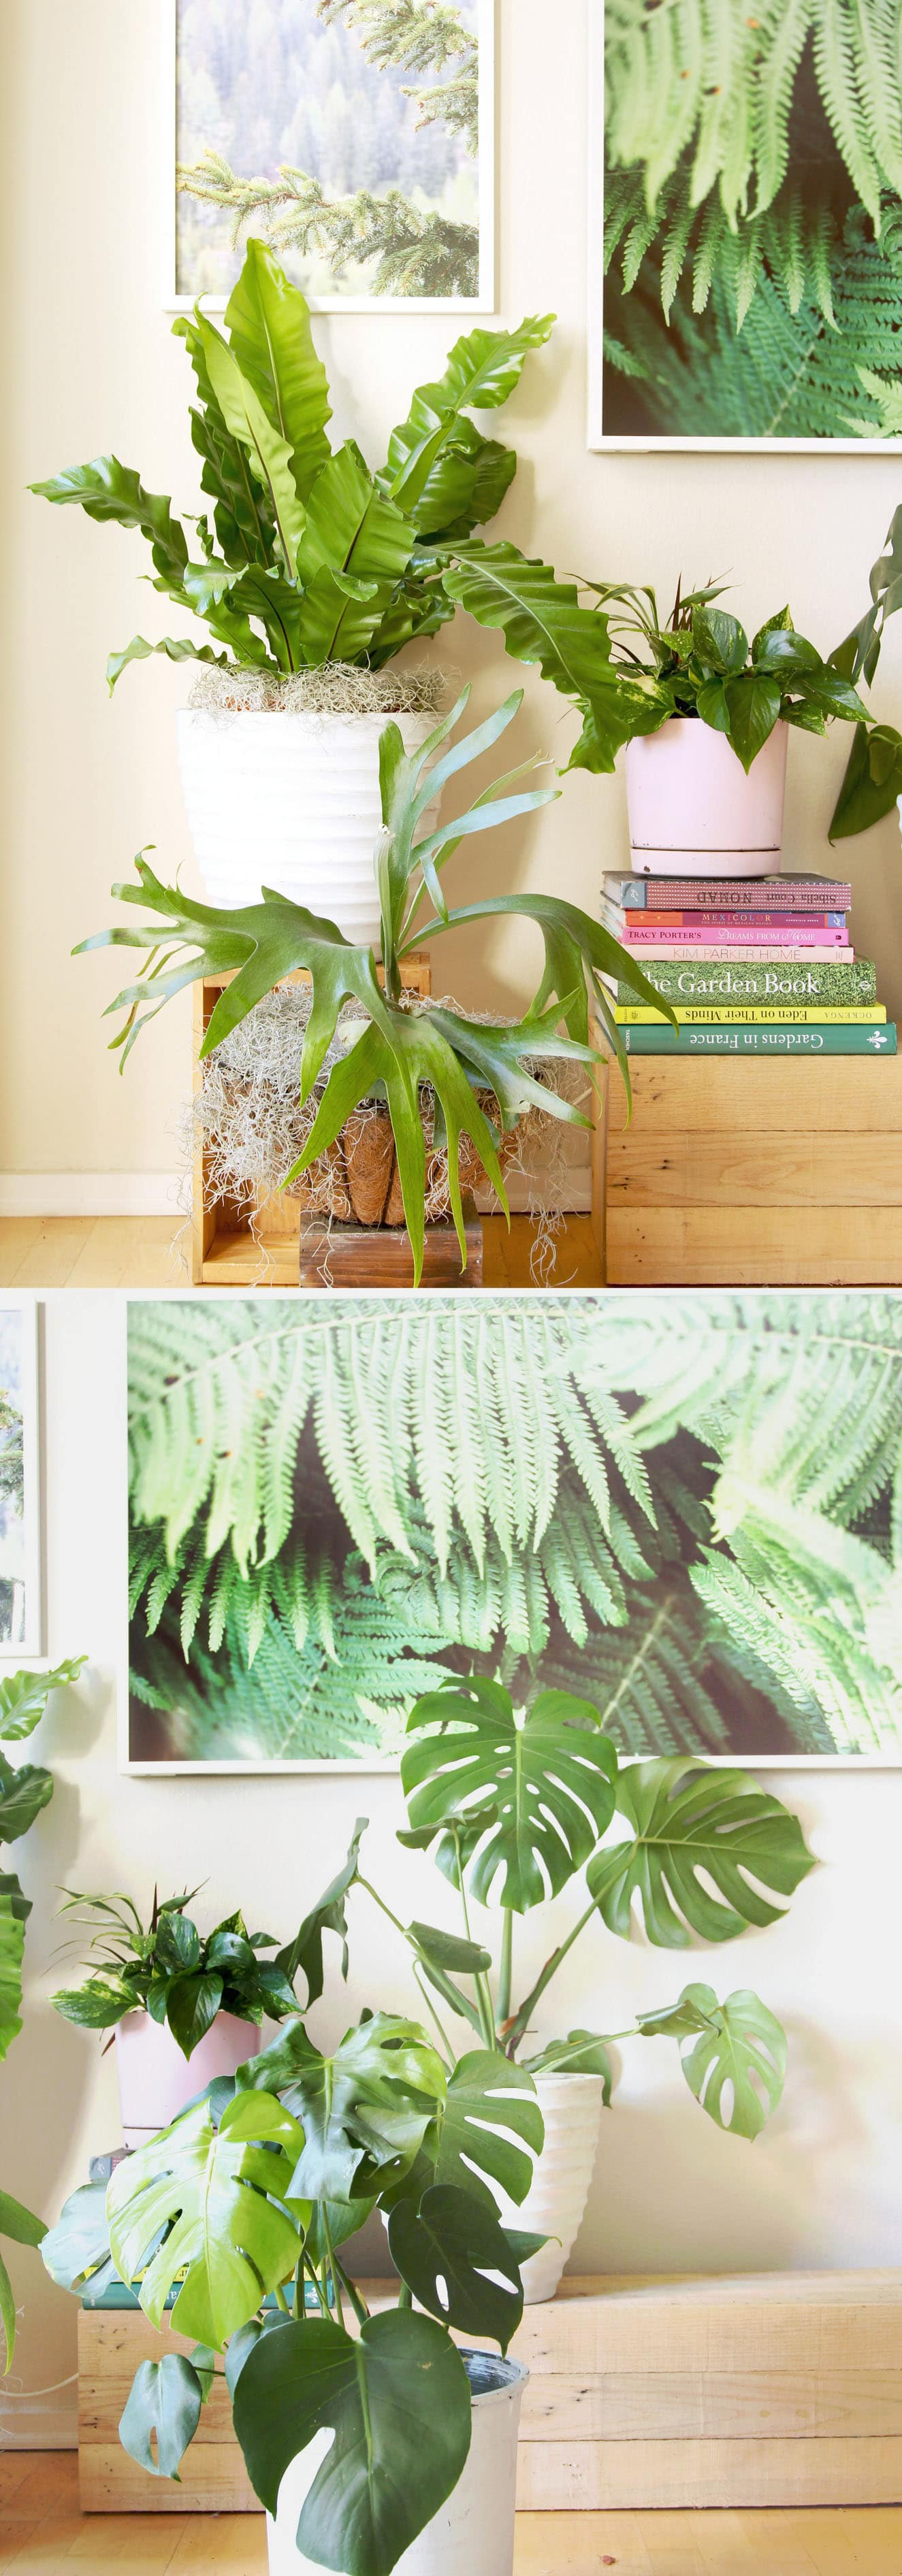 18 most beautiful indoor plants 5 easy care tips a piece of rainbow - Easy care indoor plants ...